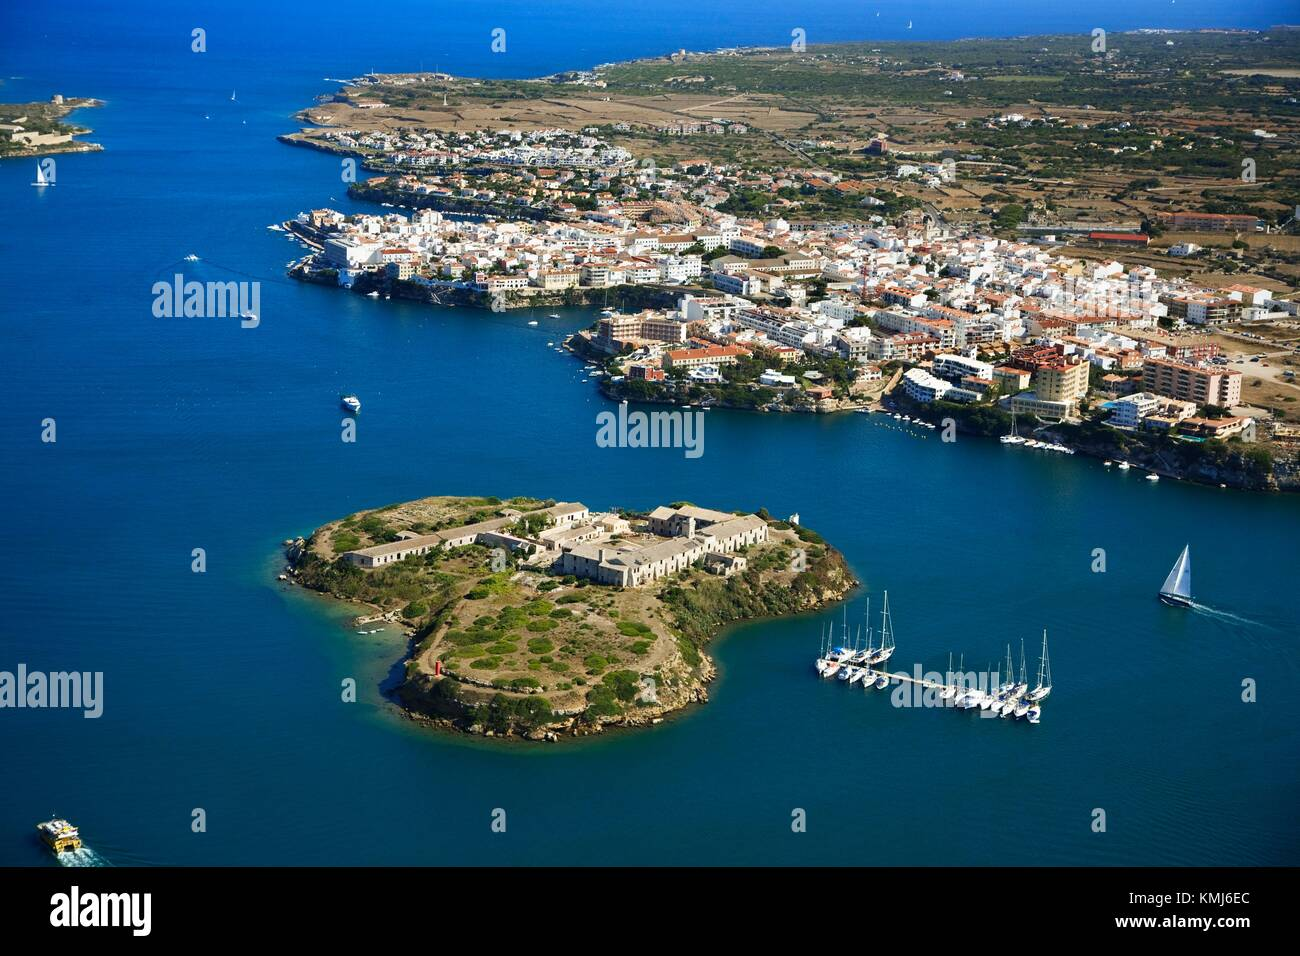 Isla del Rey and Es Castell. Minorca, Balearic Islands, Spain. - Stock Image